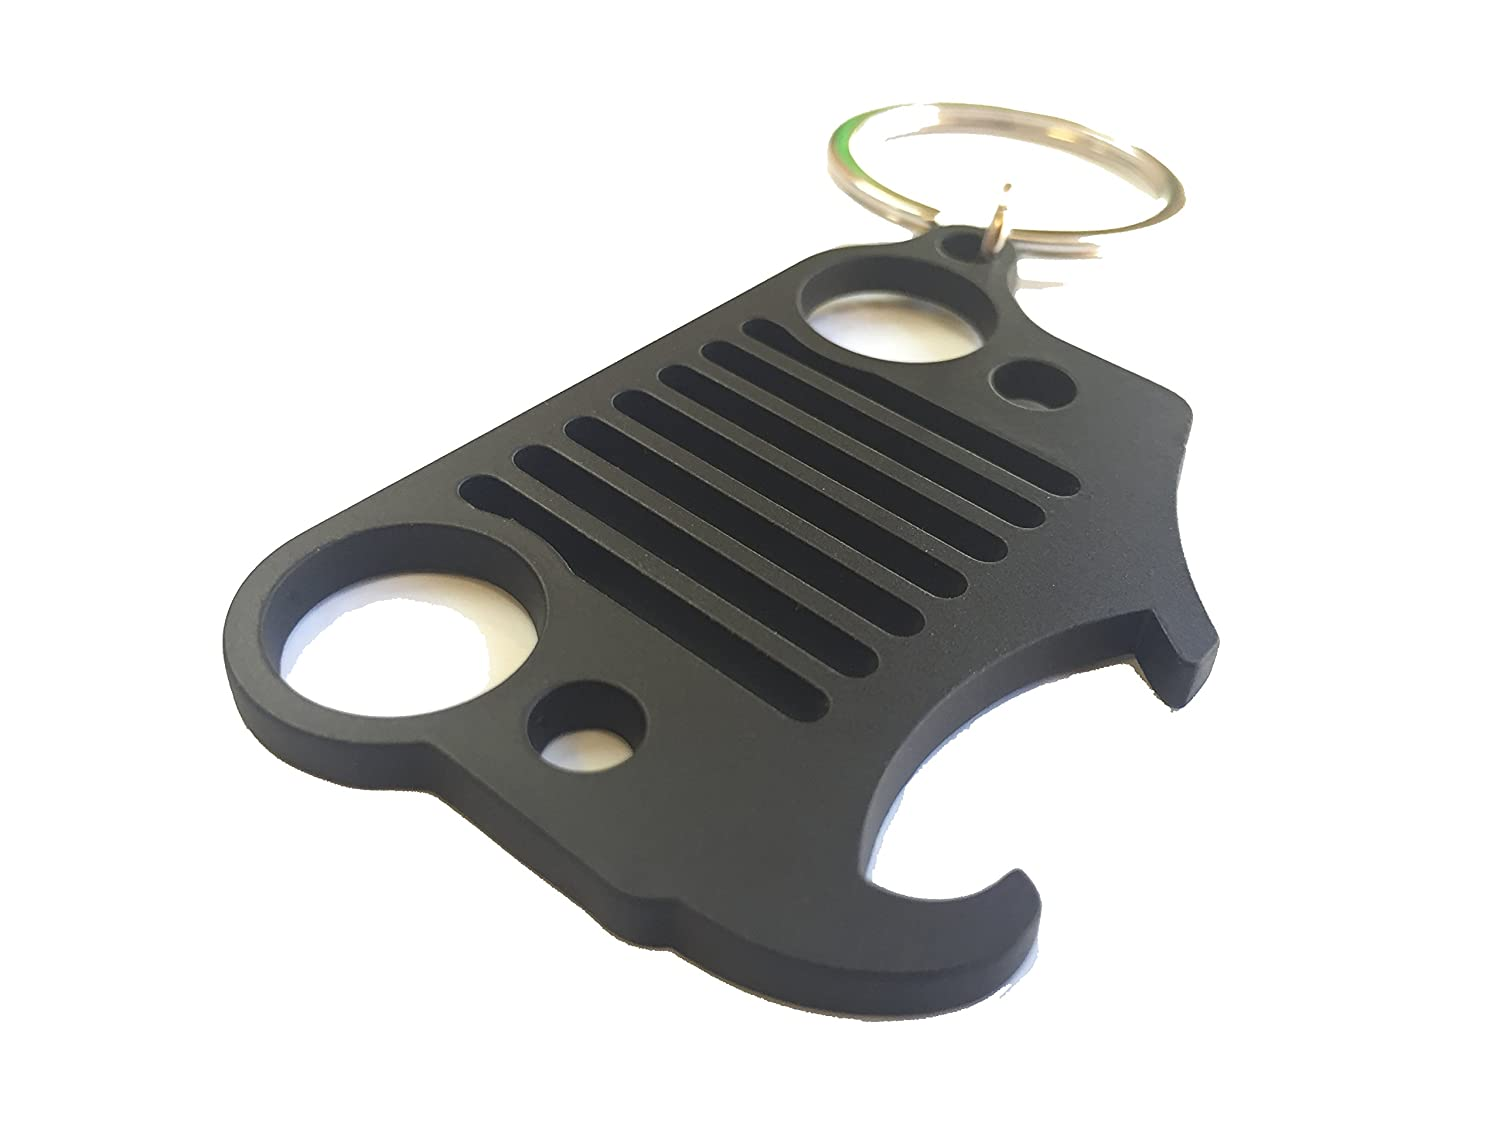 Off-Camber Design Jeep Grill Key Chain Bottle Opener Keychain Matte Black Wrangler Grille